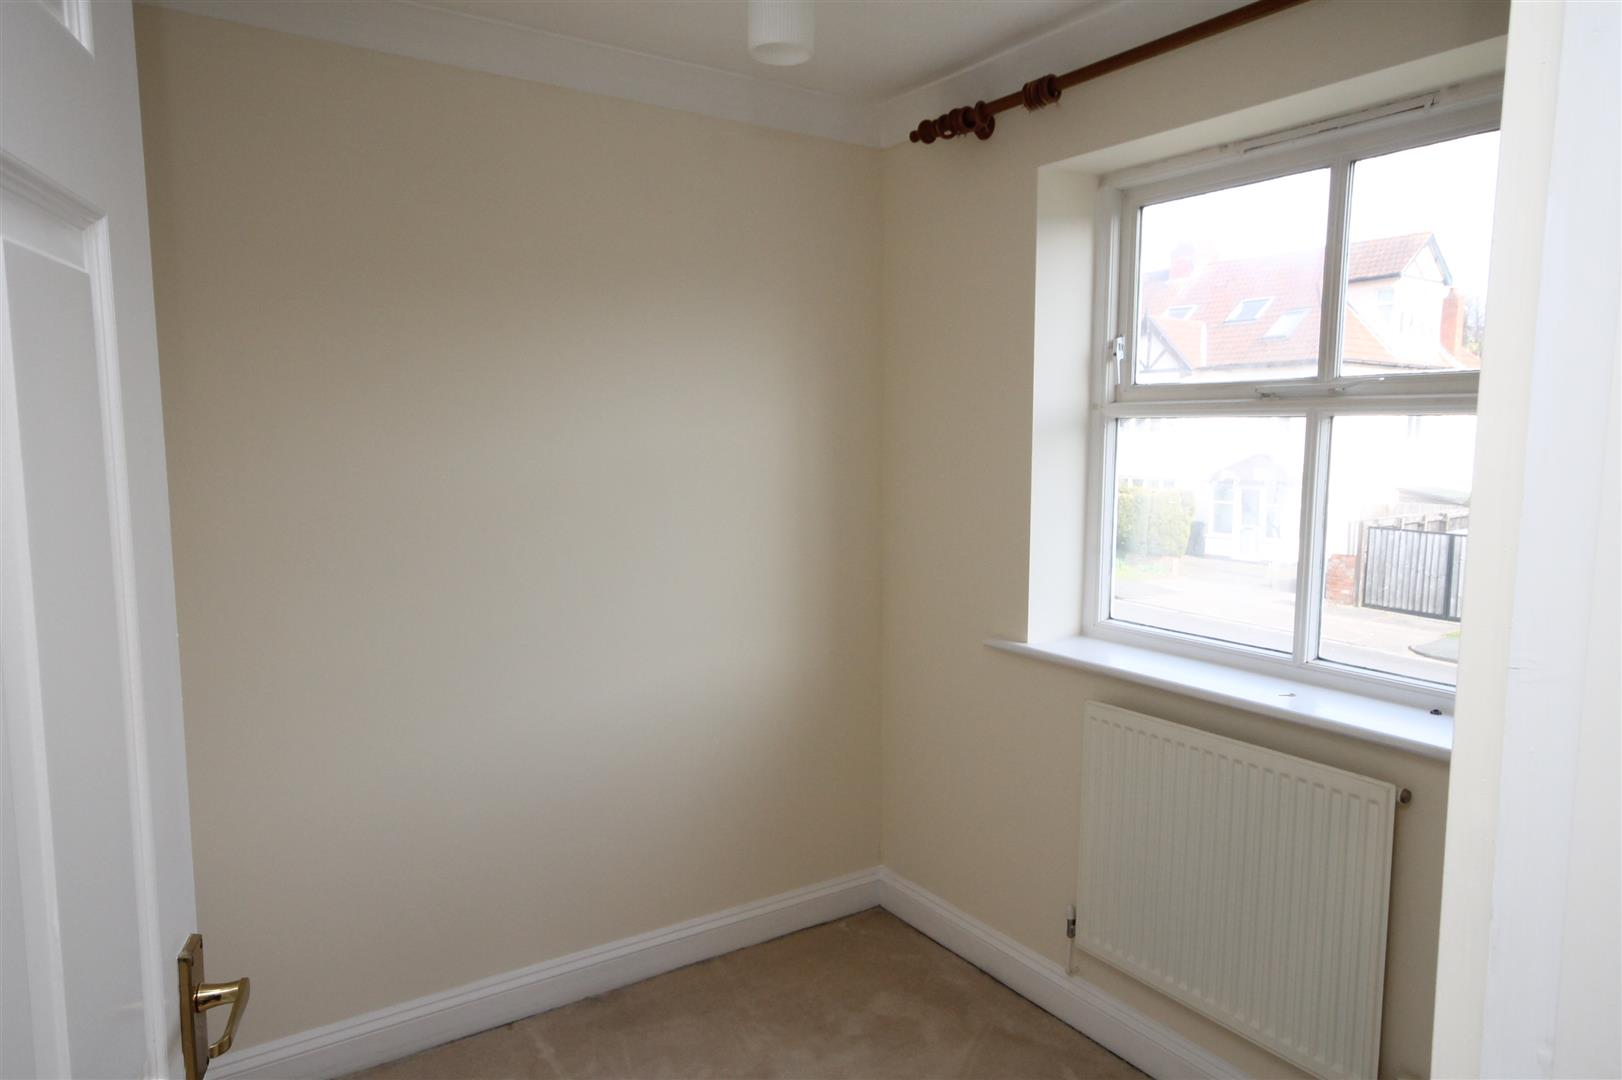 4 bed house to rent in Reedley Road, Bristol  - Property Image 9